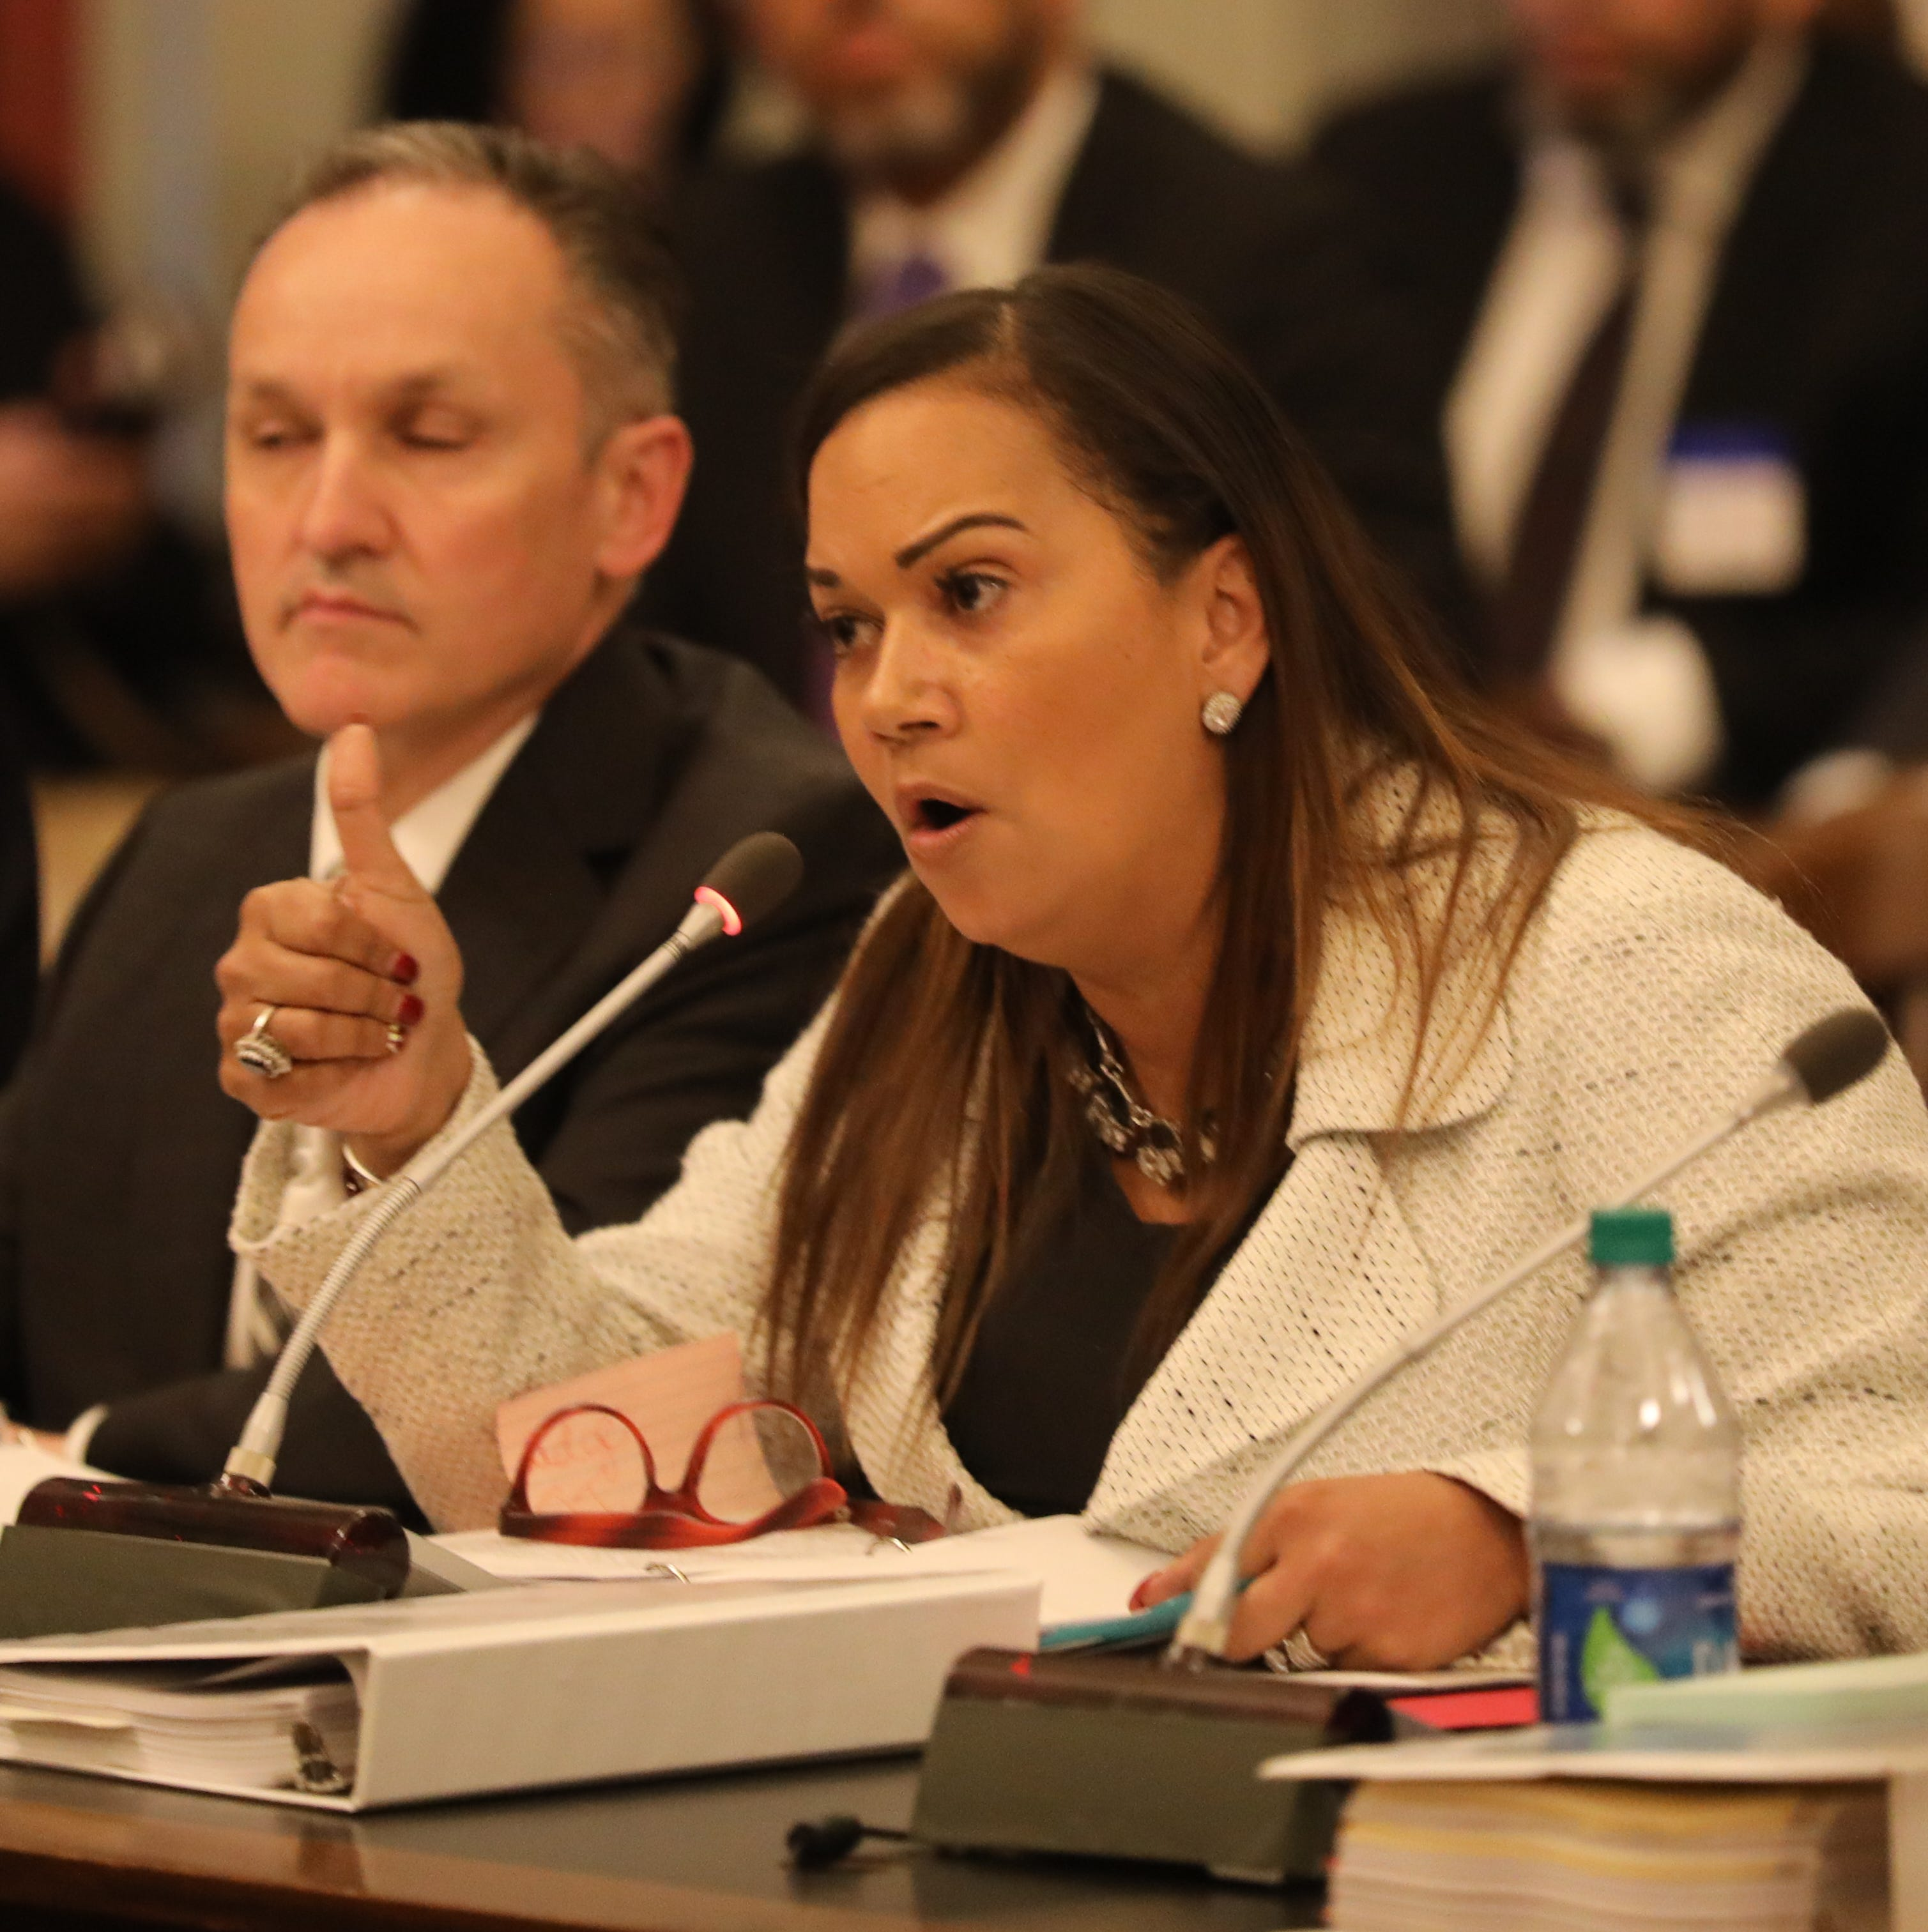 Lizette Delgado-Polanco resigns from Schools Development Authority